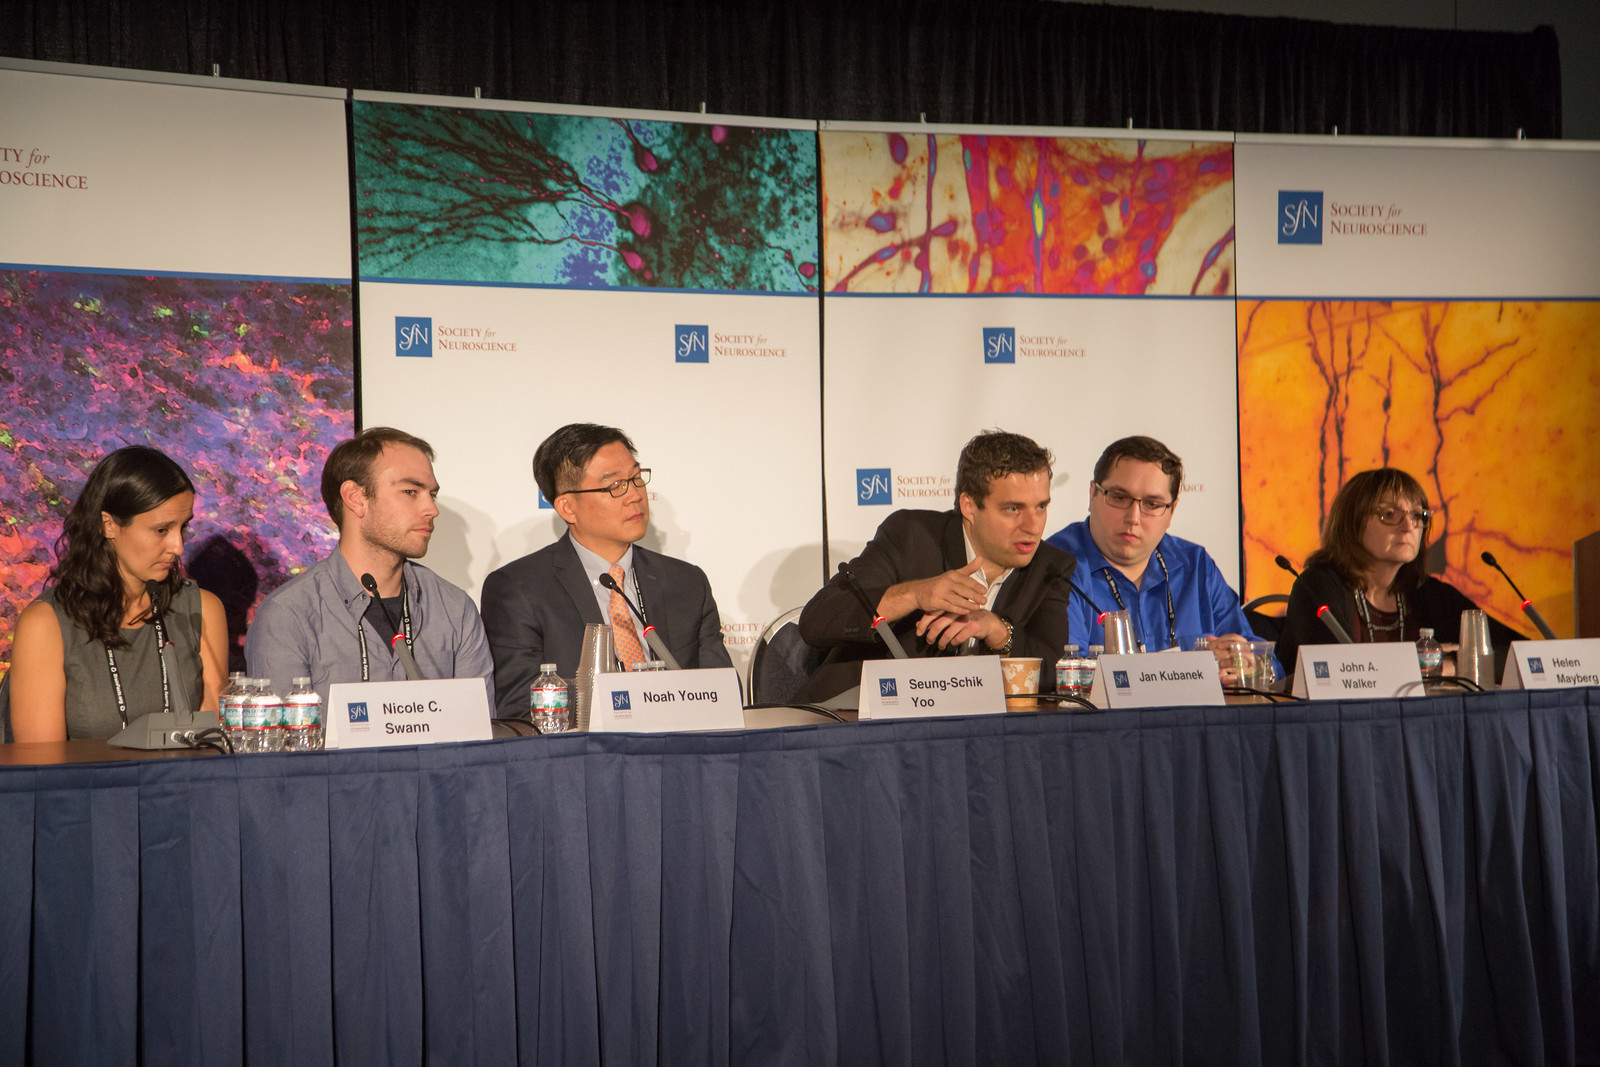 panel at the annual meeting